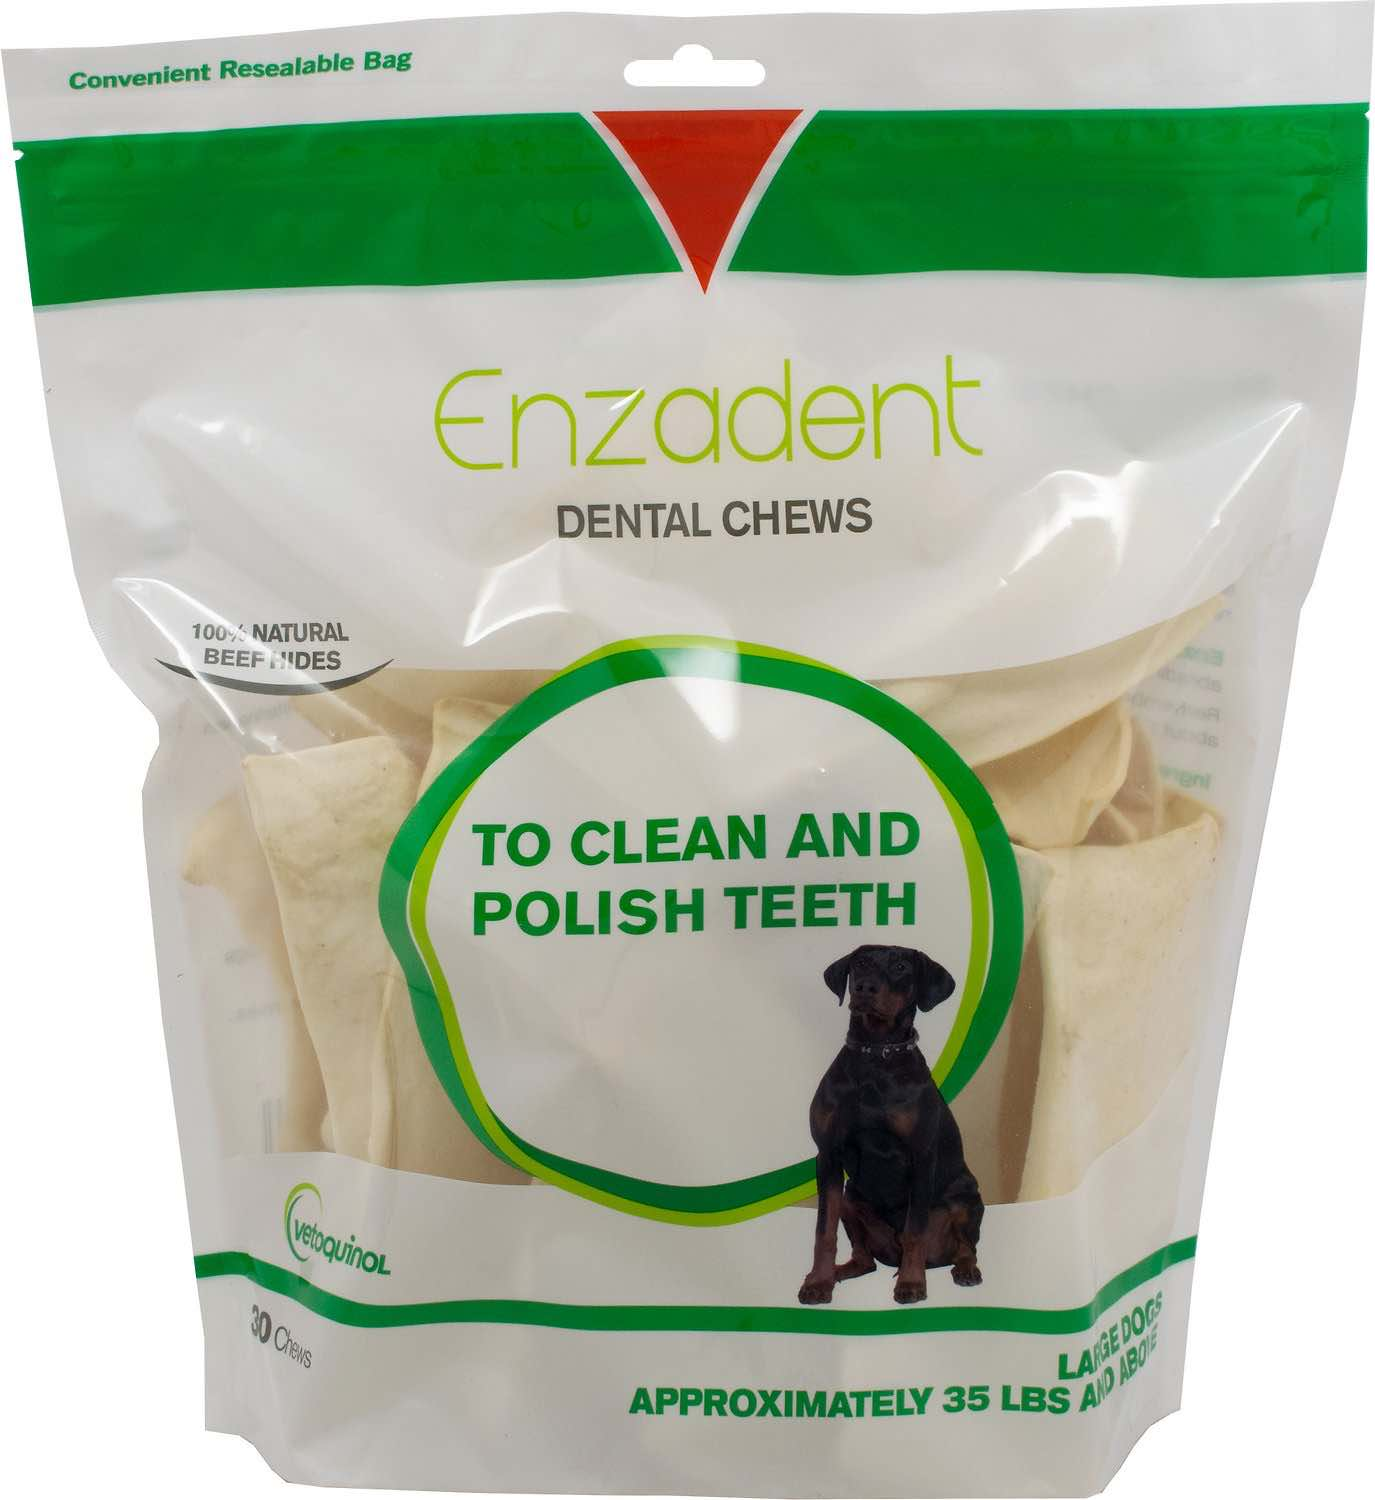 Enzadent Dental Chews 30 count for large dogs 35-50 lbs 1